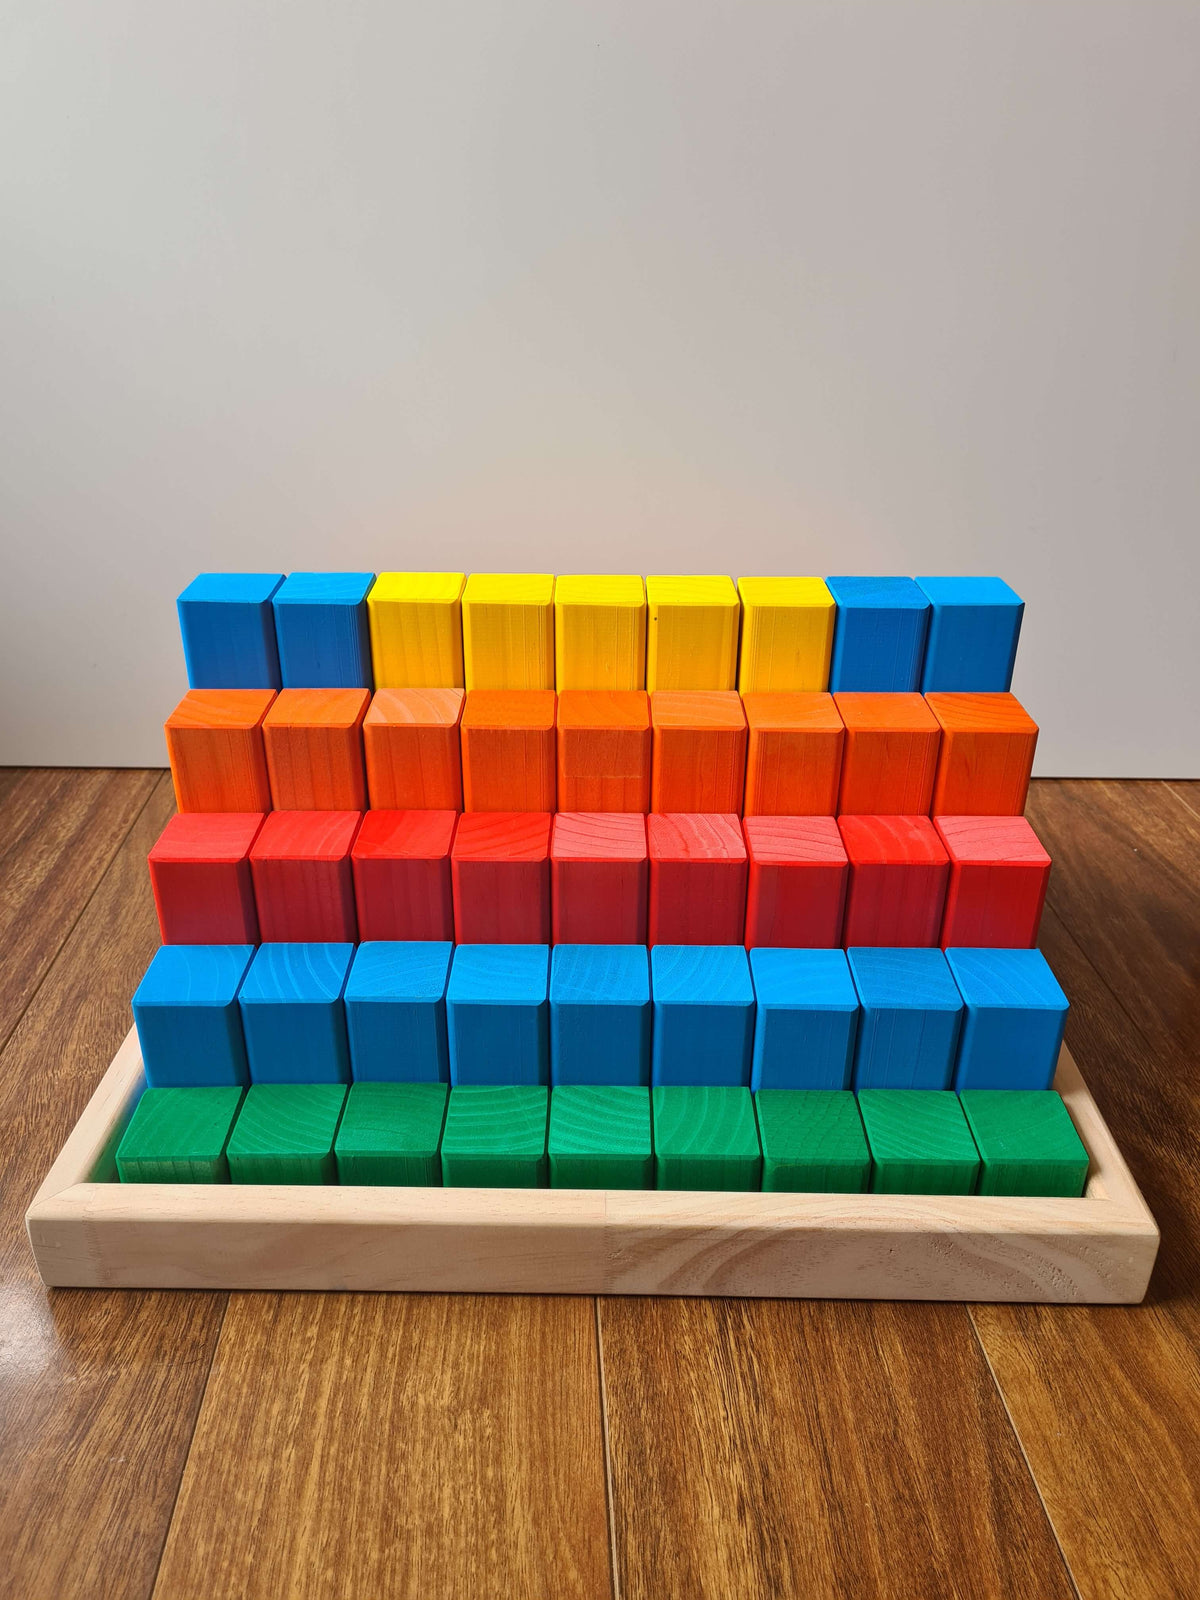 Coloured Building Blocks – 81 Piece Kit